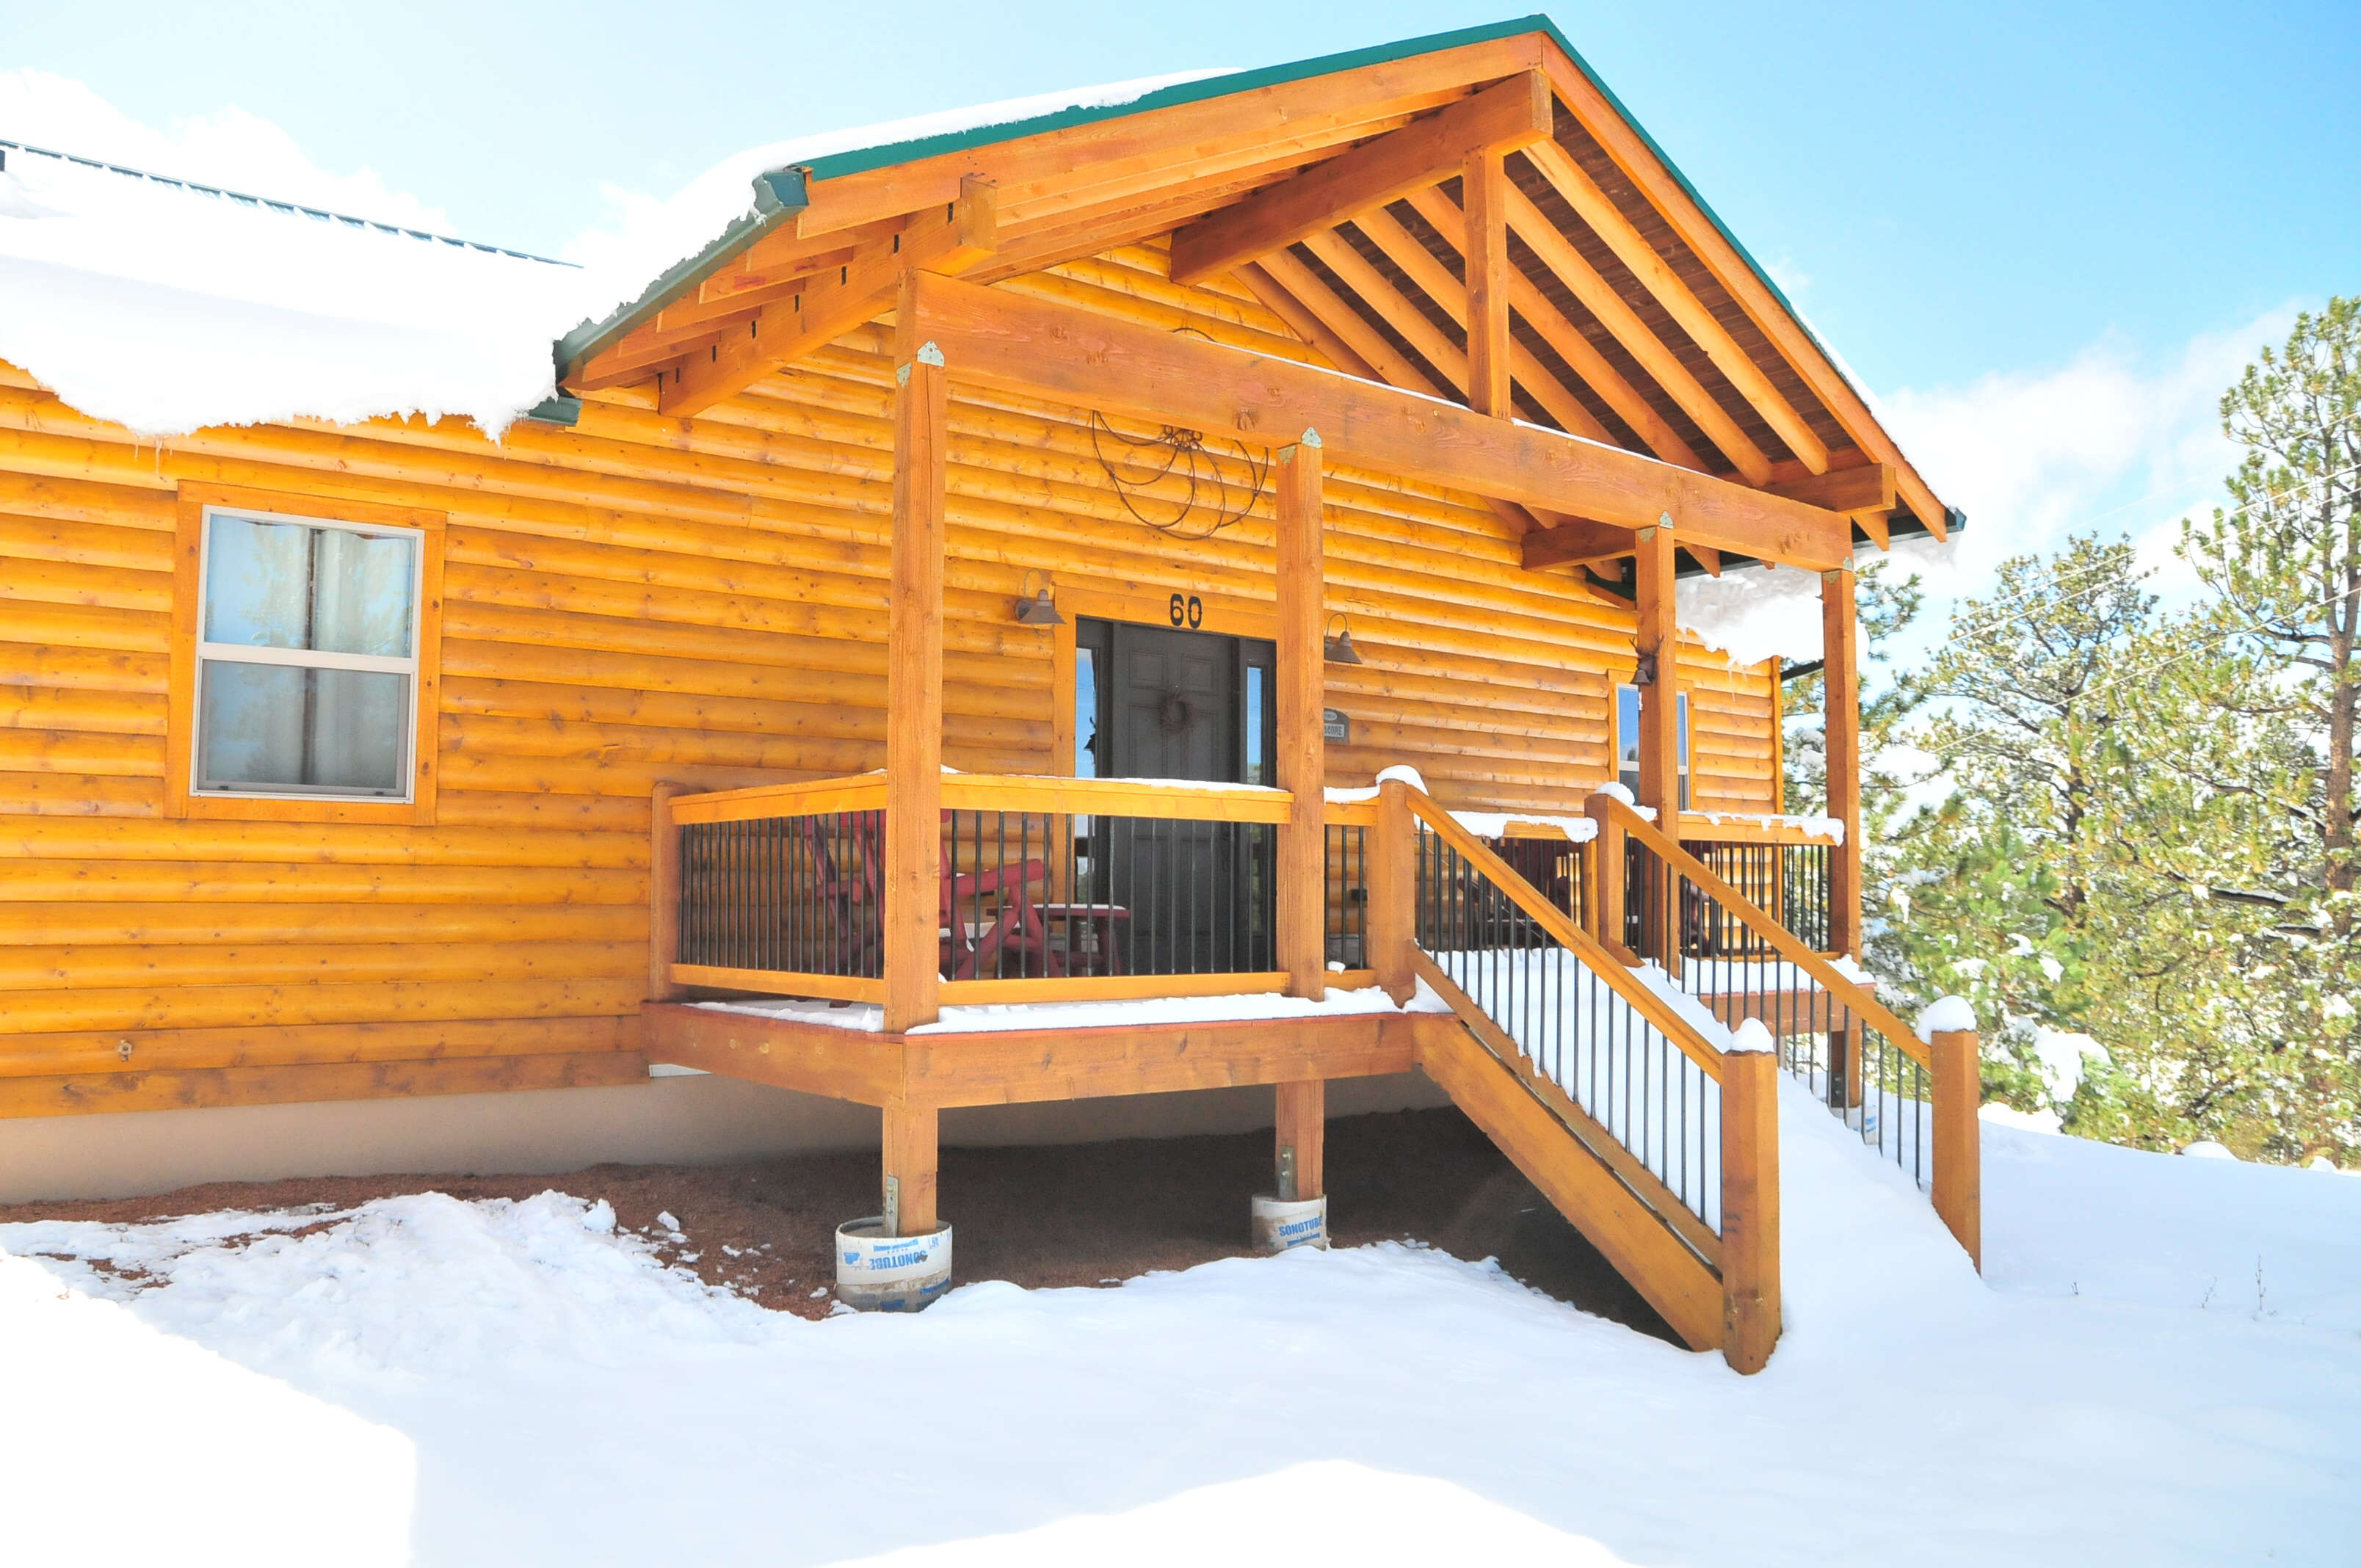 bit black place minute adventure lodging cabins last vacation rentals hills cabin two